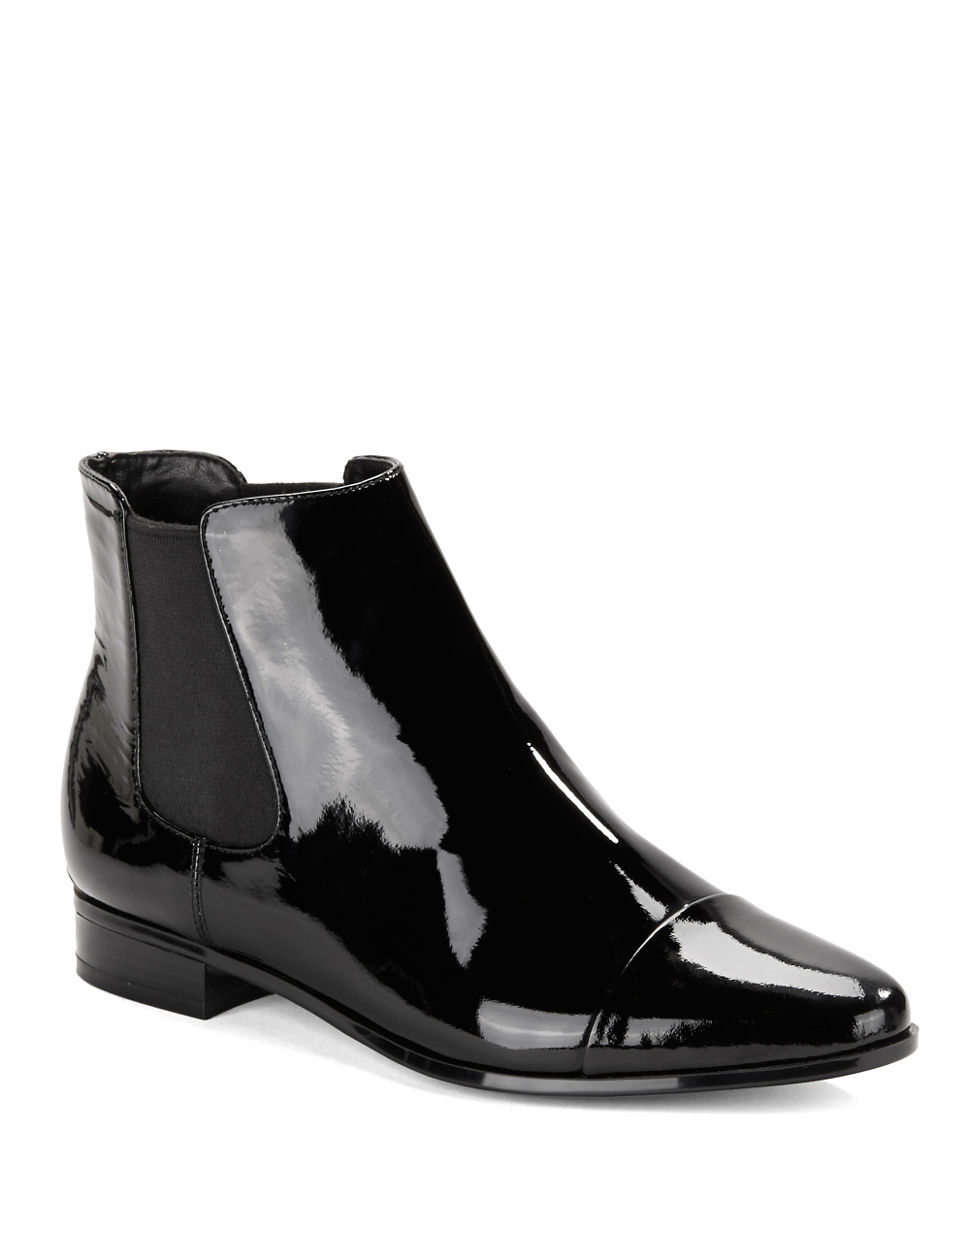 Lyst - Calvin Klein Finilla Faux Patent Leather Booties in ...